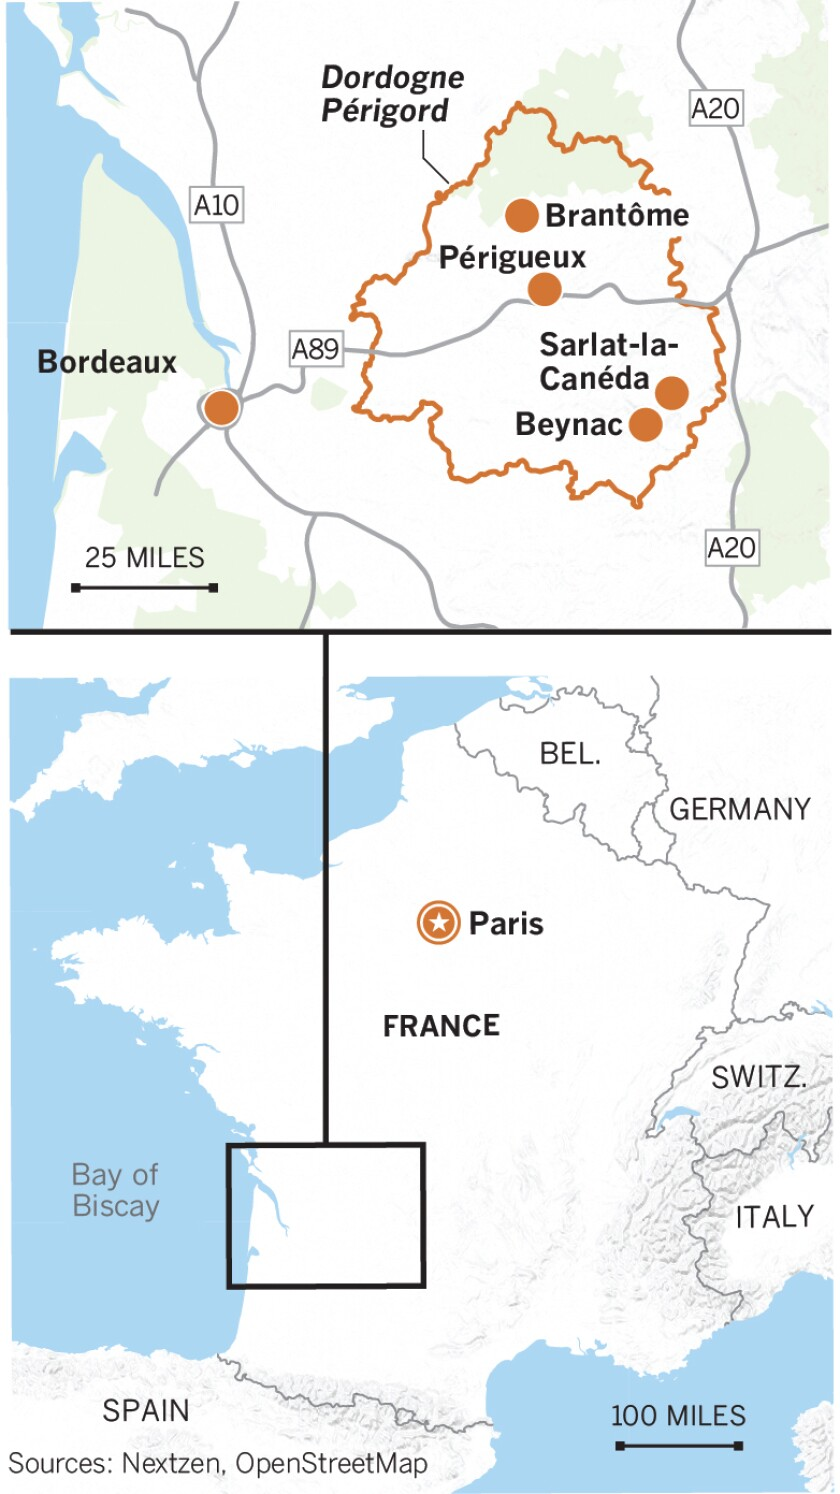 Map of France showing Paris and the city of Bordeaux. Showing the outline/boundaries of Dordogne Perigord and its towns of Beynac, Sarlat de Caneda, Brantome, Perigueux.